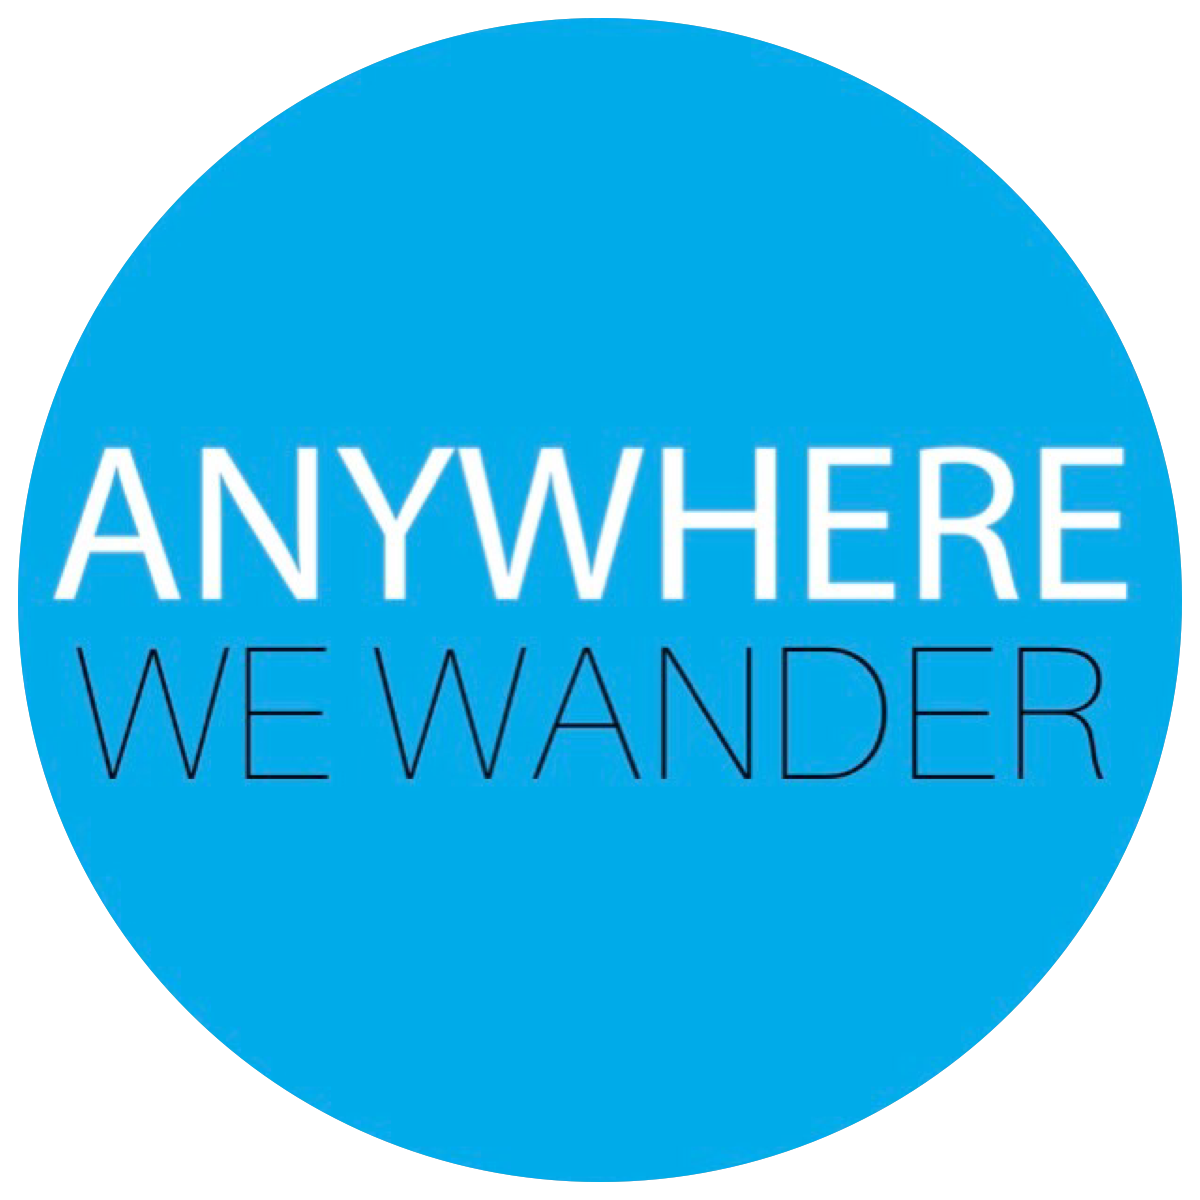 ANYWHERE WE WANDER